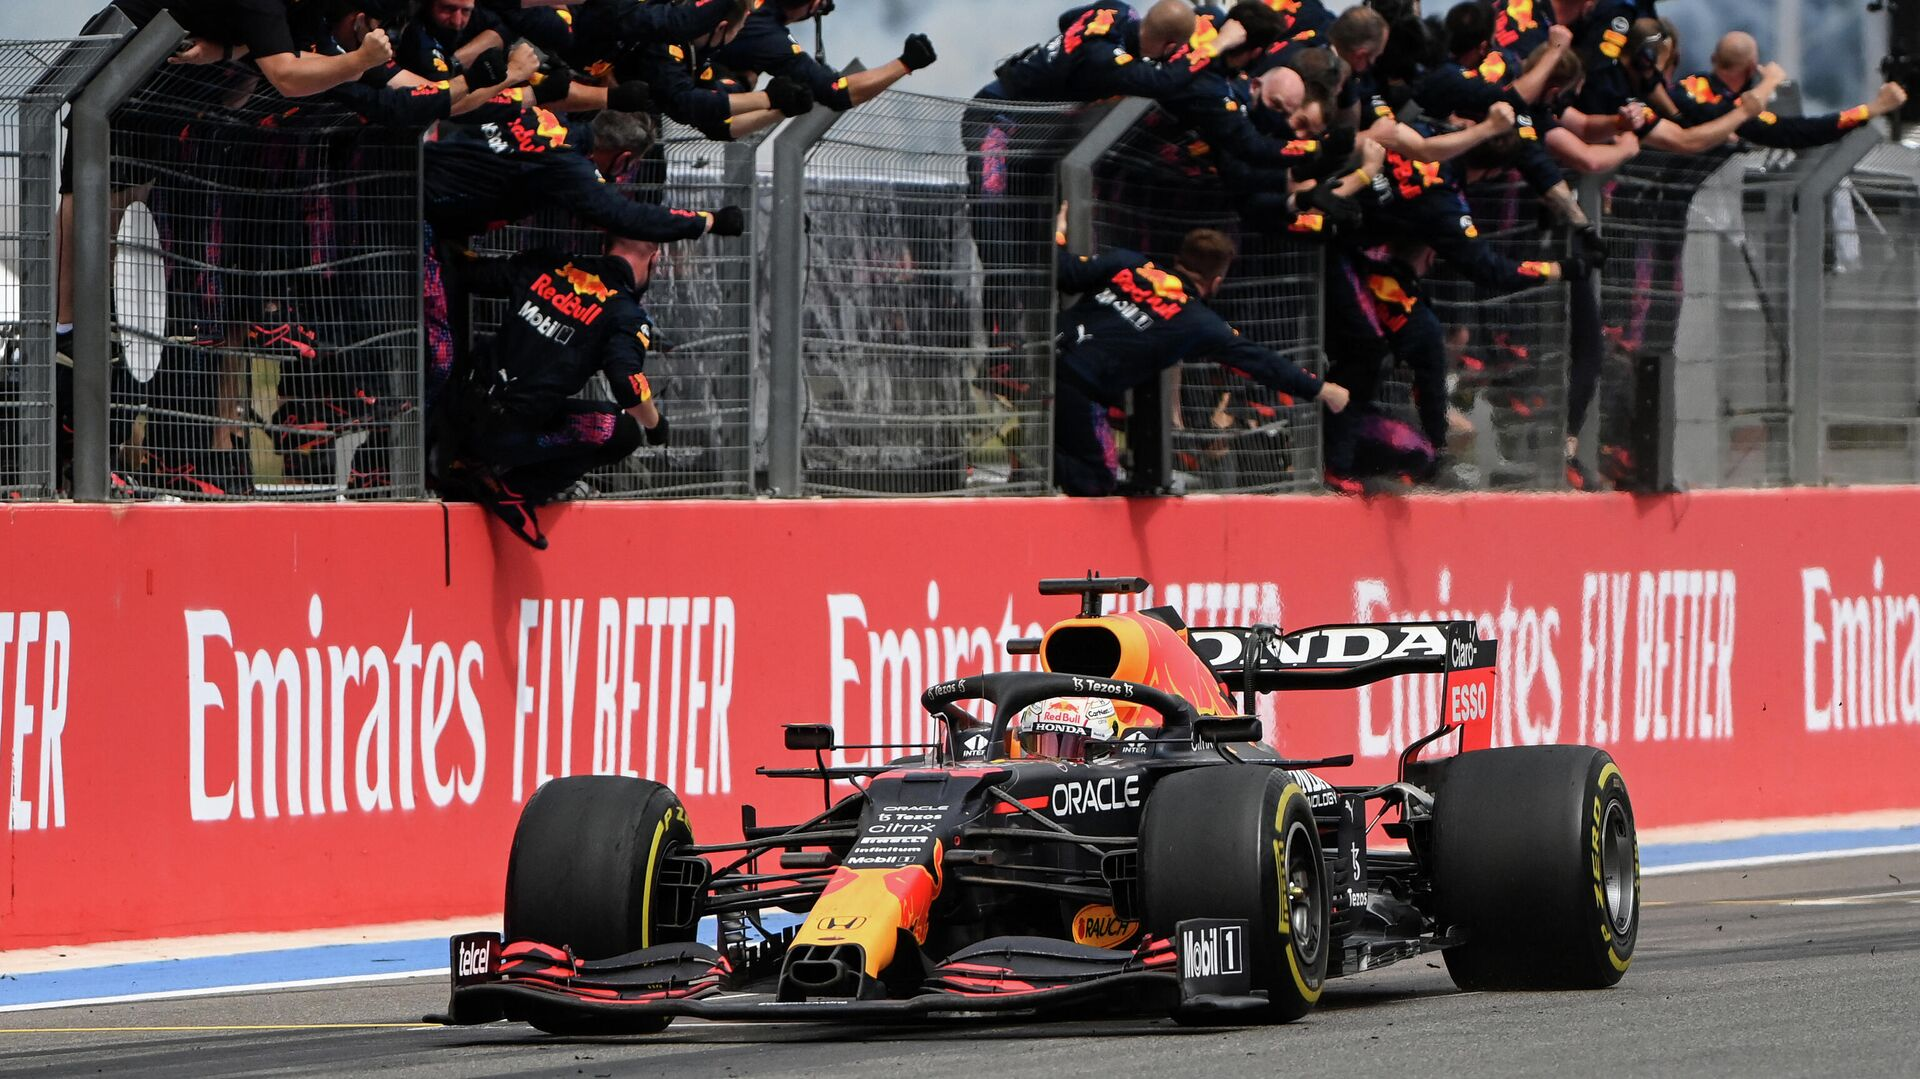 Red Bull's team members celebrate as winner Red Bull's Dutch driver Max Verstappen crosses the finish line during the French Formula One Grand Prix at the Circuit Paul-Ricard in Le Castellet, southern France, on June 20, 2021. (Photo by CHRISTOPHE SIMON / AFP) - РИА Новости, 1920, 20.06.2021